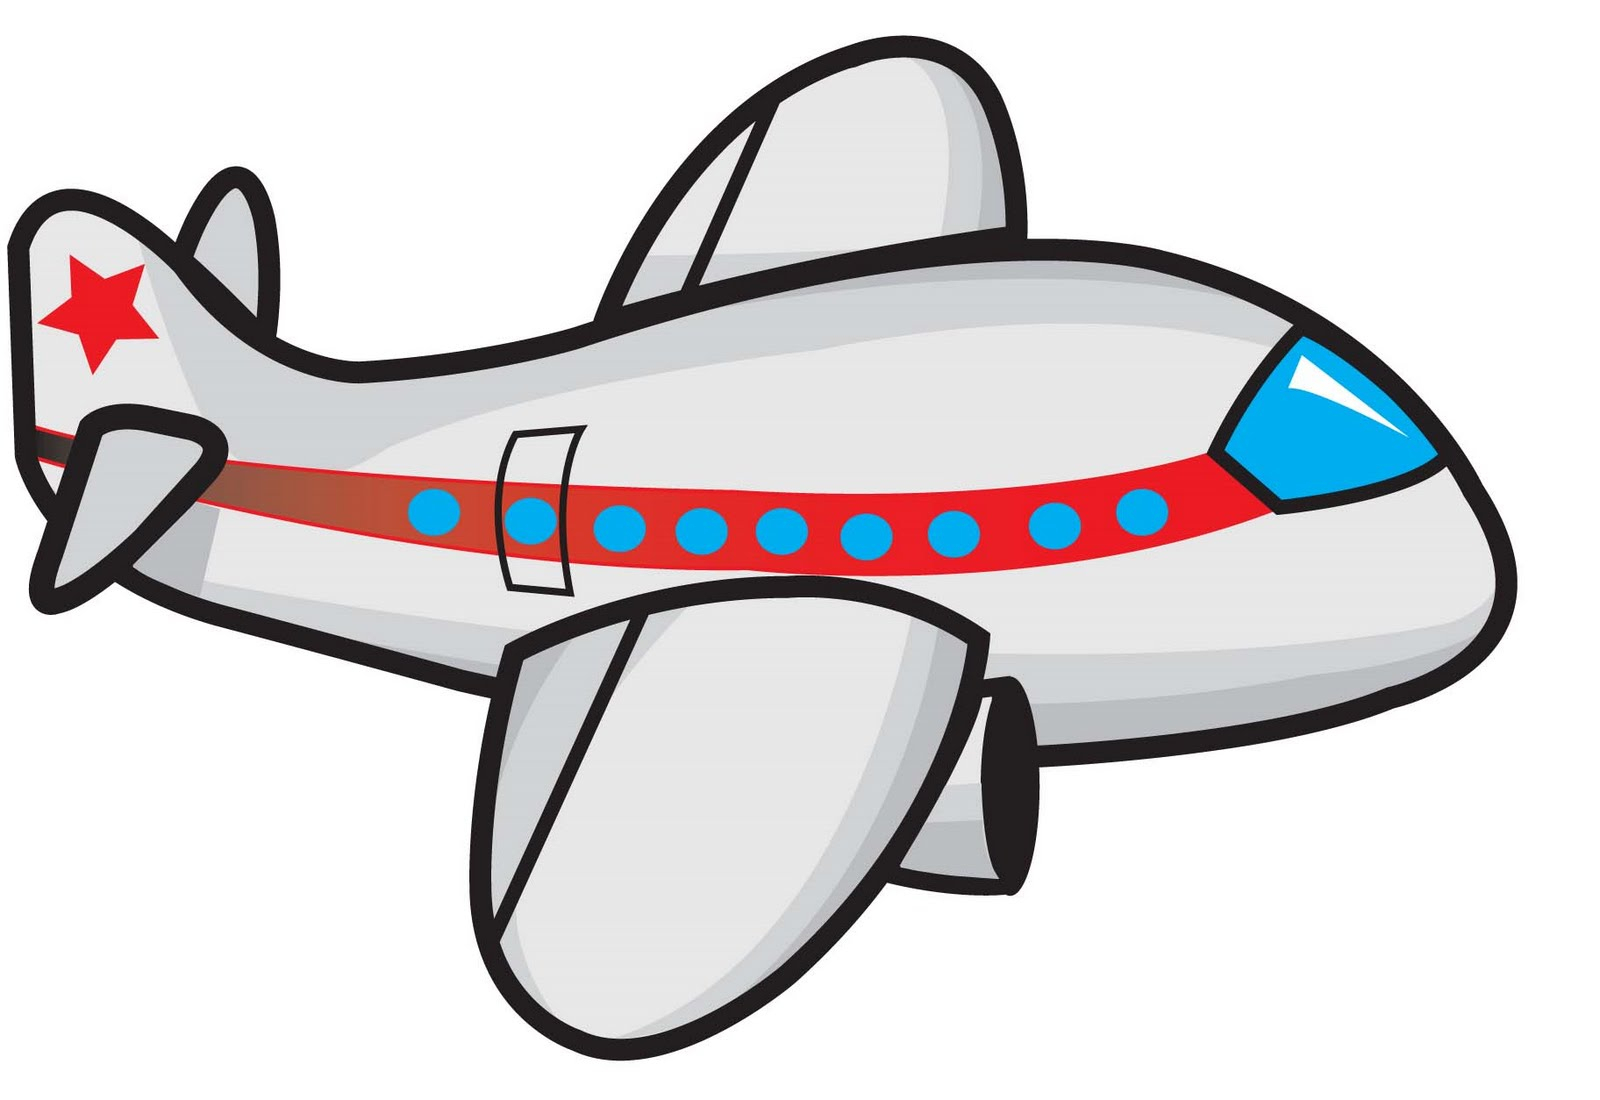 1600x1100 Cartoon Plane Drawing Cute Airplane Website The Plane Comes